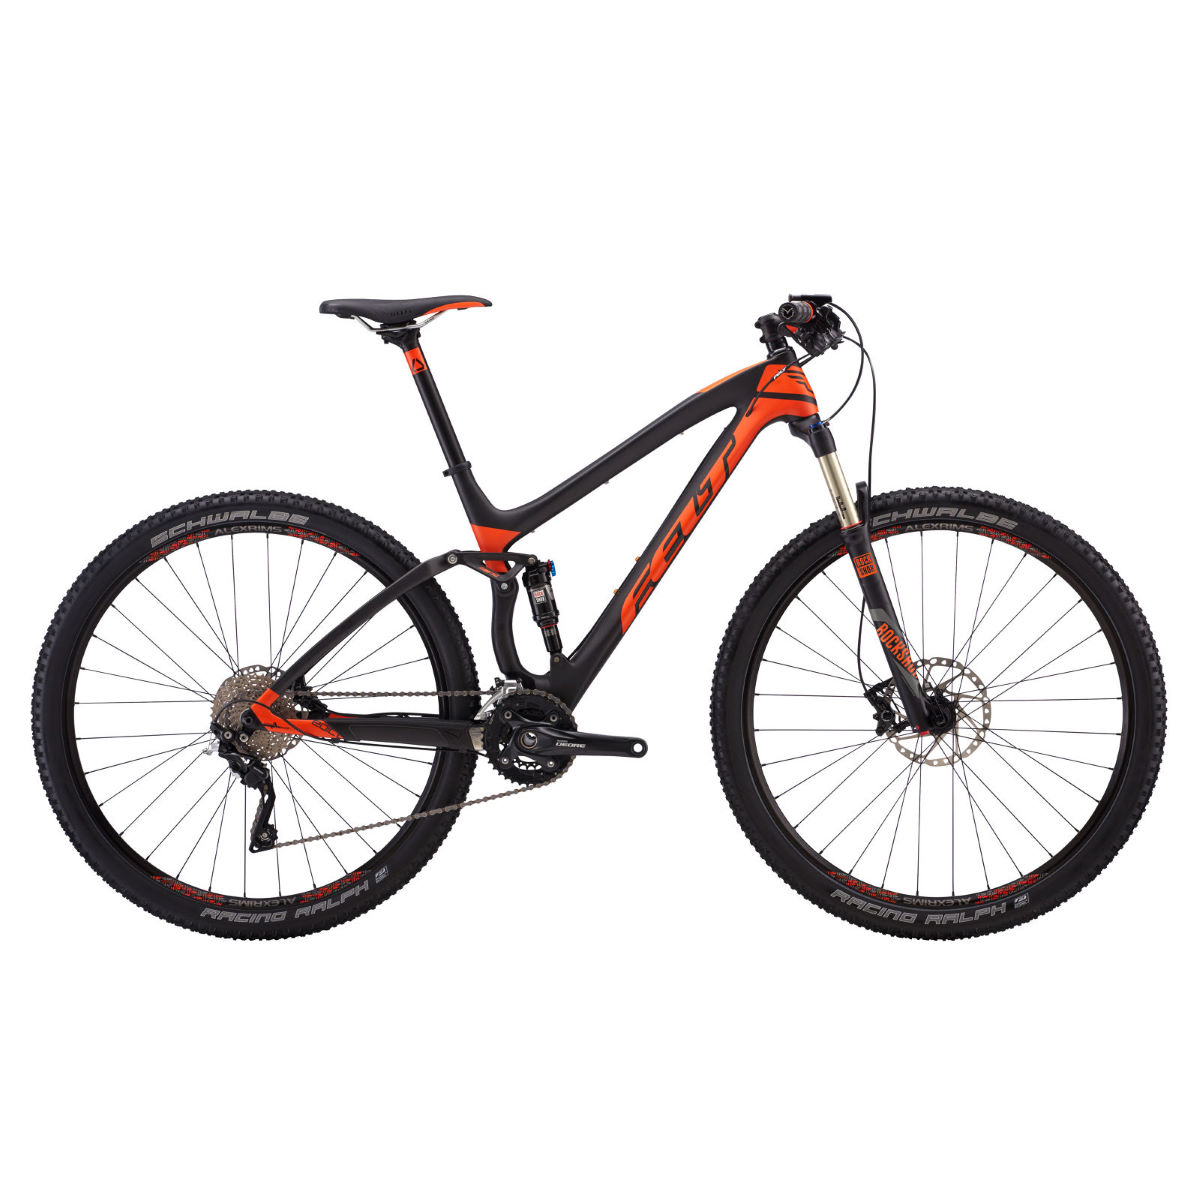 VTT Felt Edict 3 (2016) - 20'' Carbon/Orange VTT tout suspendu